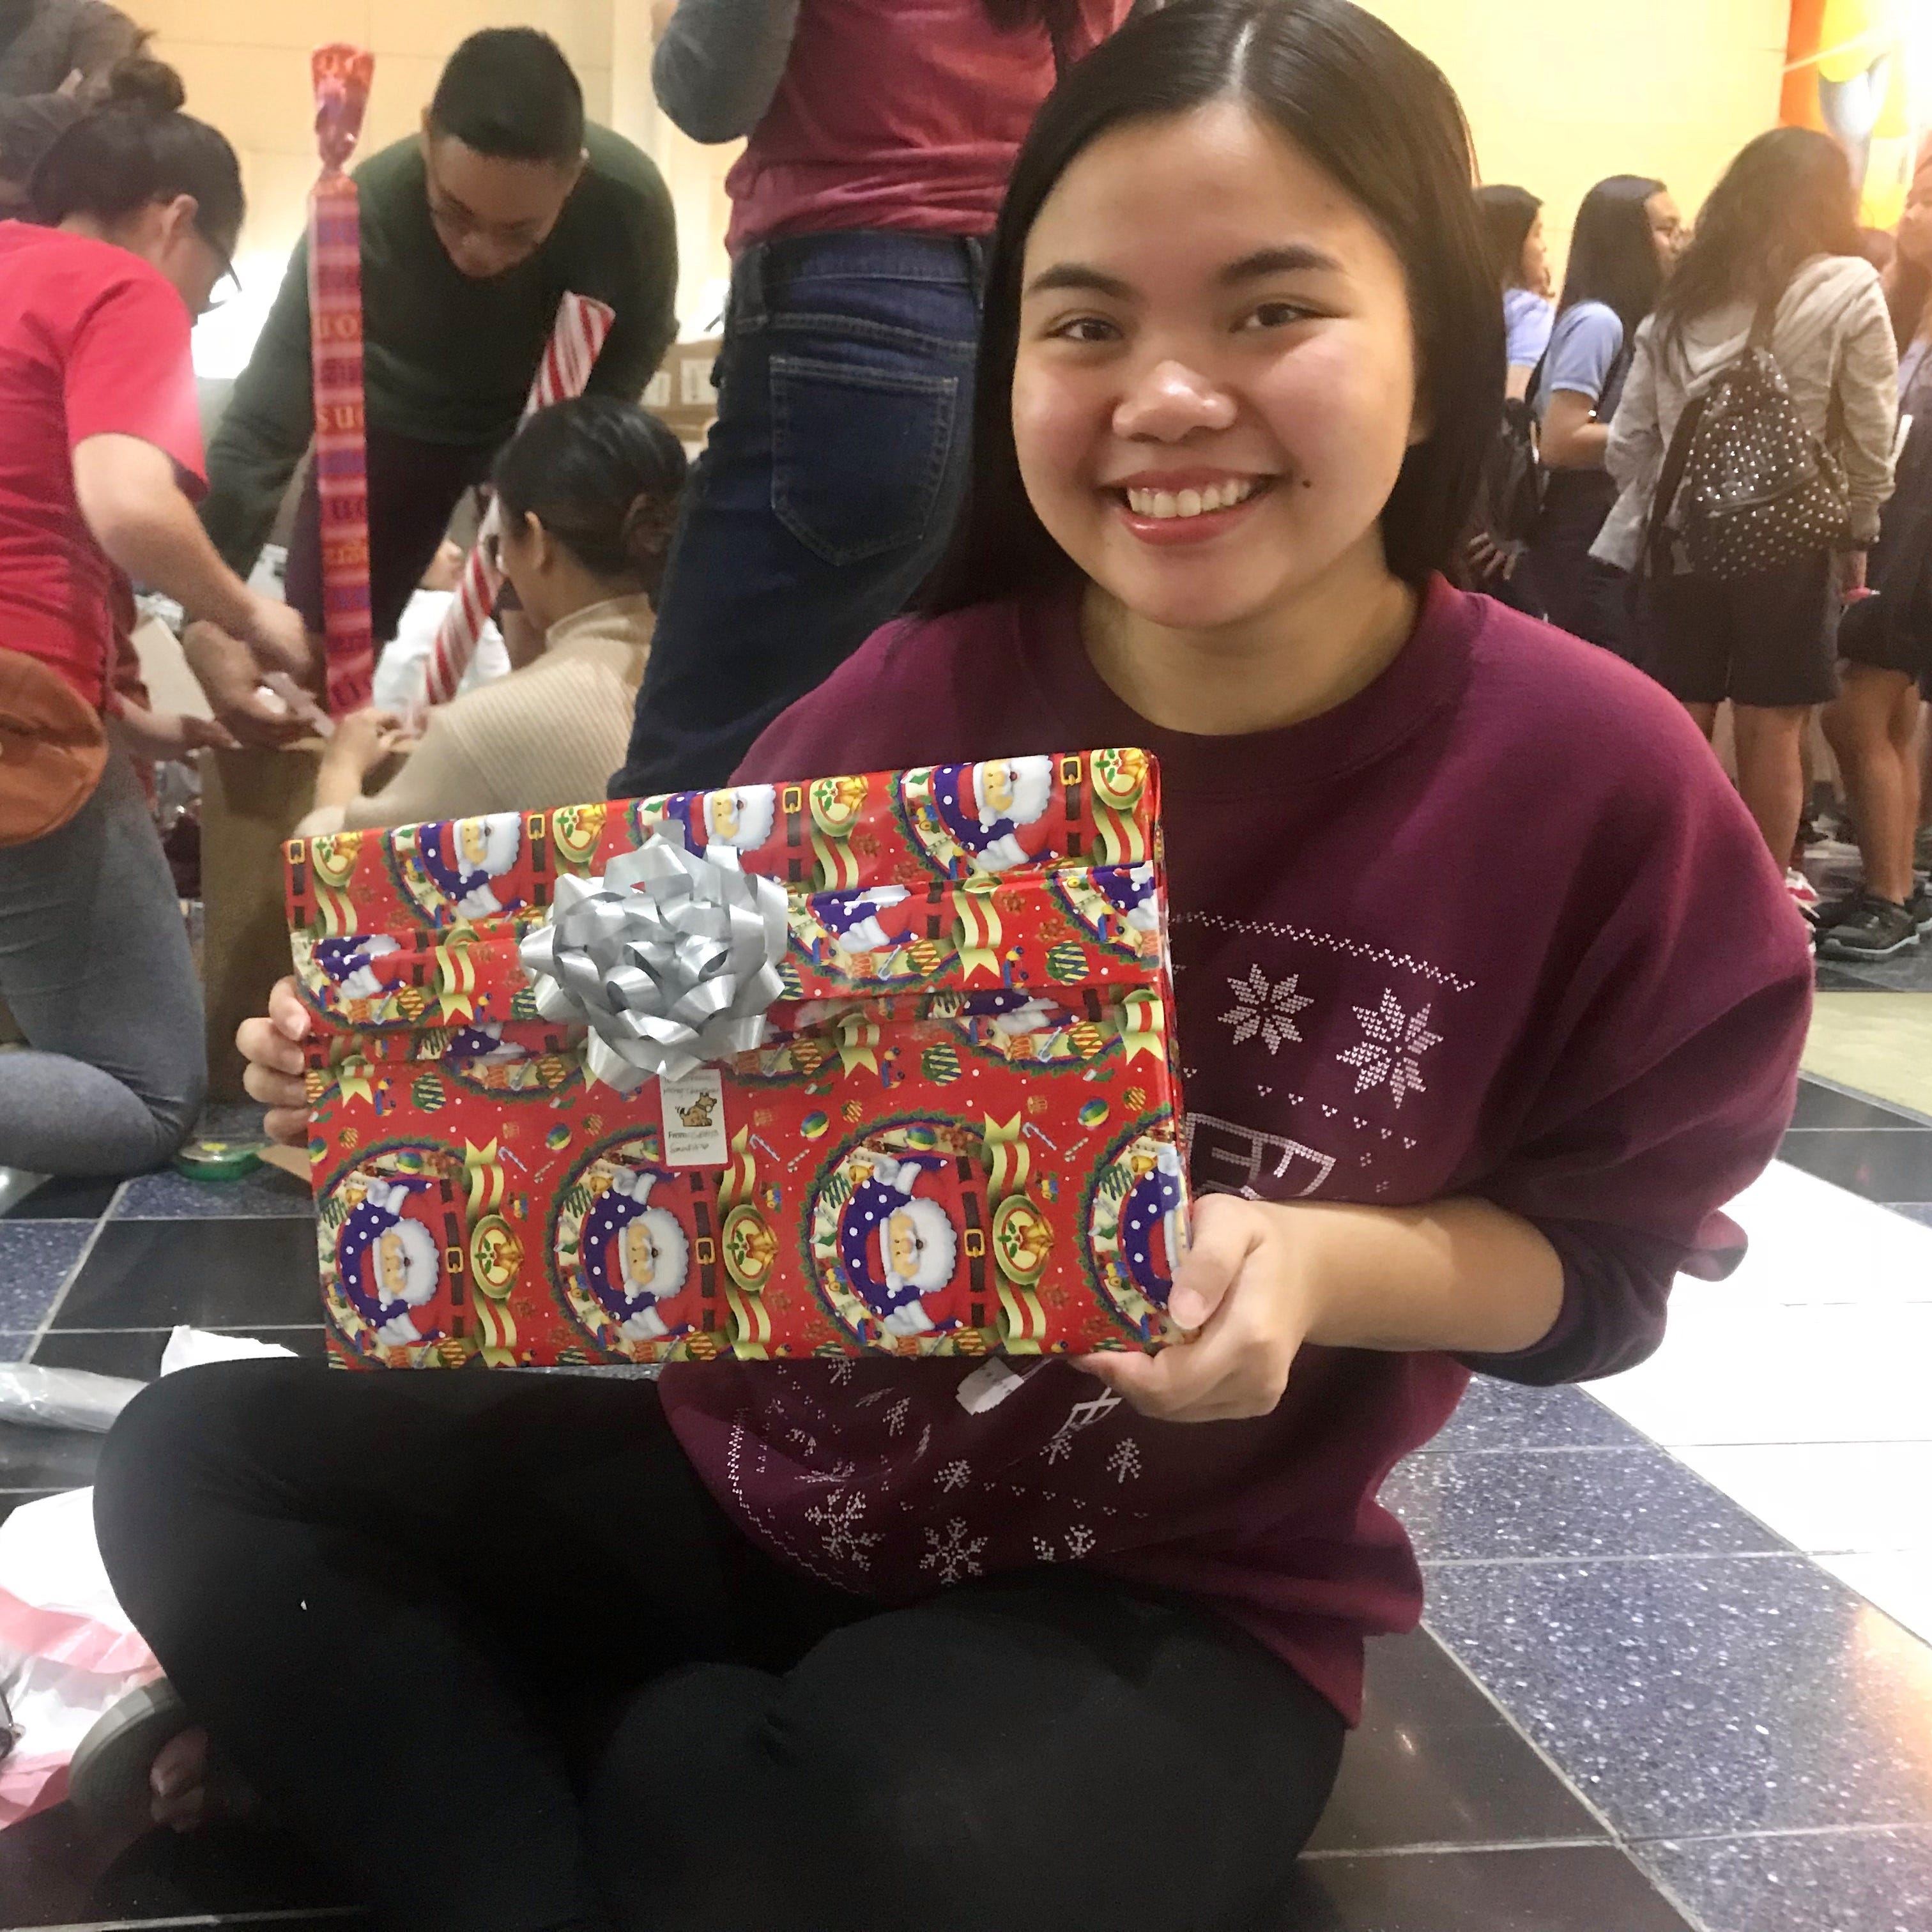 More than 800 gifts wrapped for those less fortunate